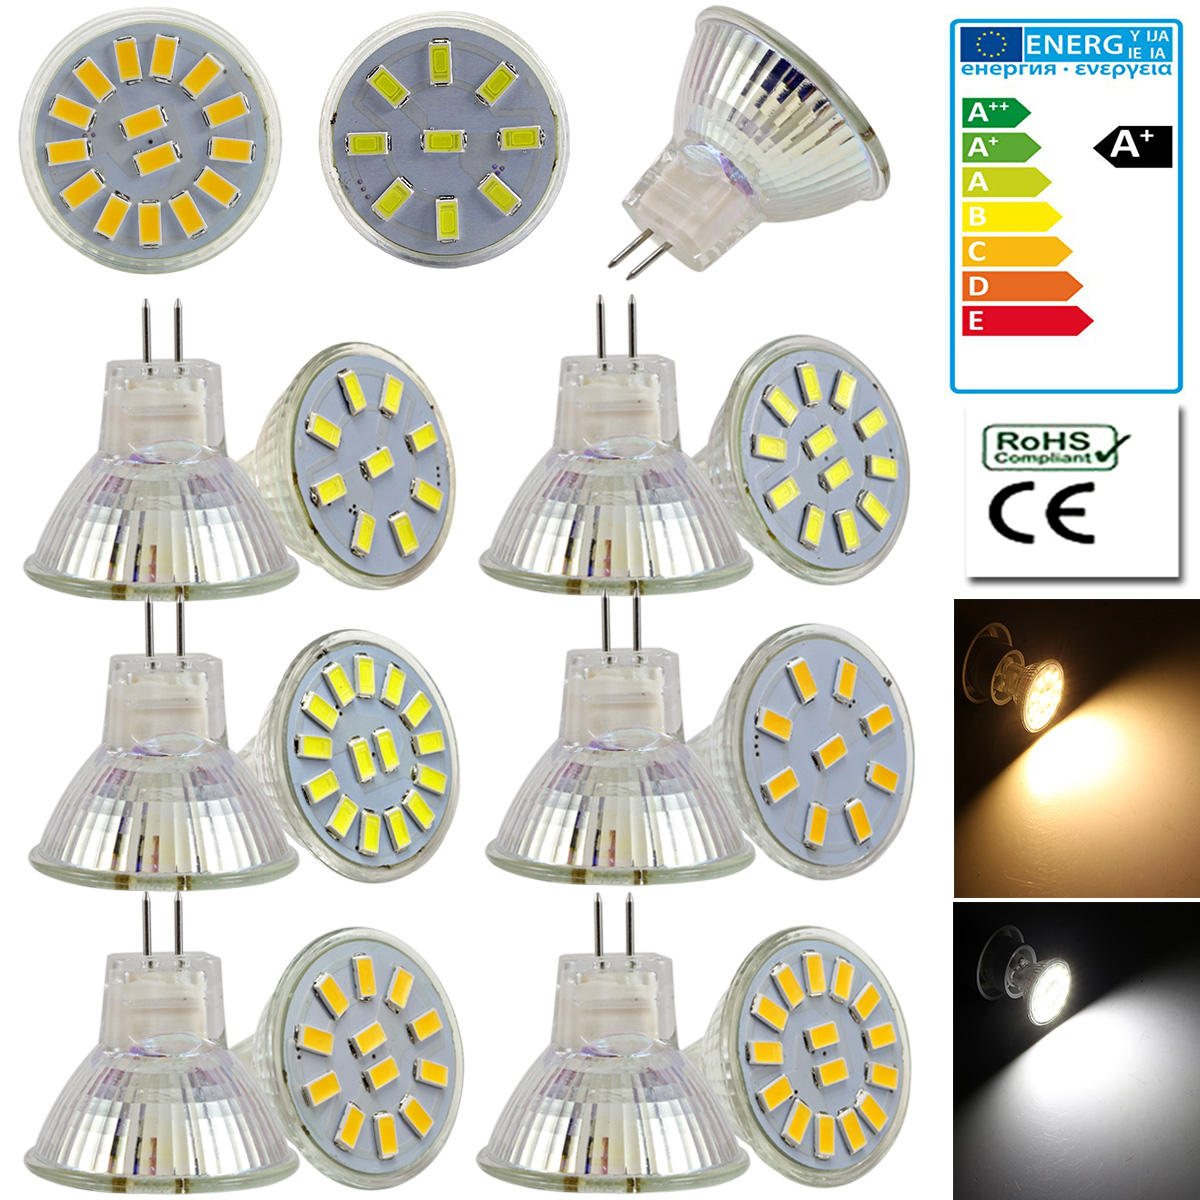 6000K Spotlight 50W Halogen Bulbs Equivalent Renewed Non-dimmable MR16 LED Light Bulbs 120 Degree Beam Angle 500lm 6-Pack DiCUNO GU10 LED Bulbs 5W Pure White